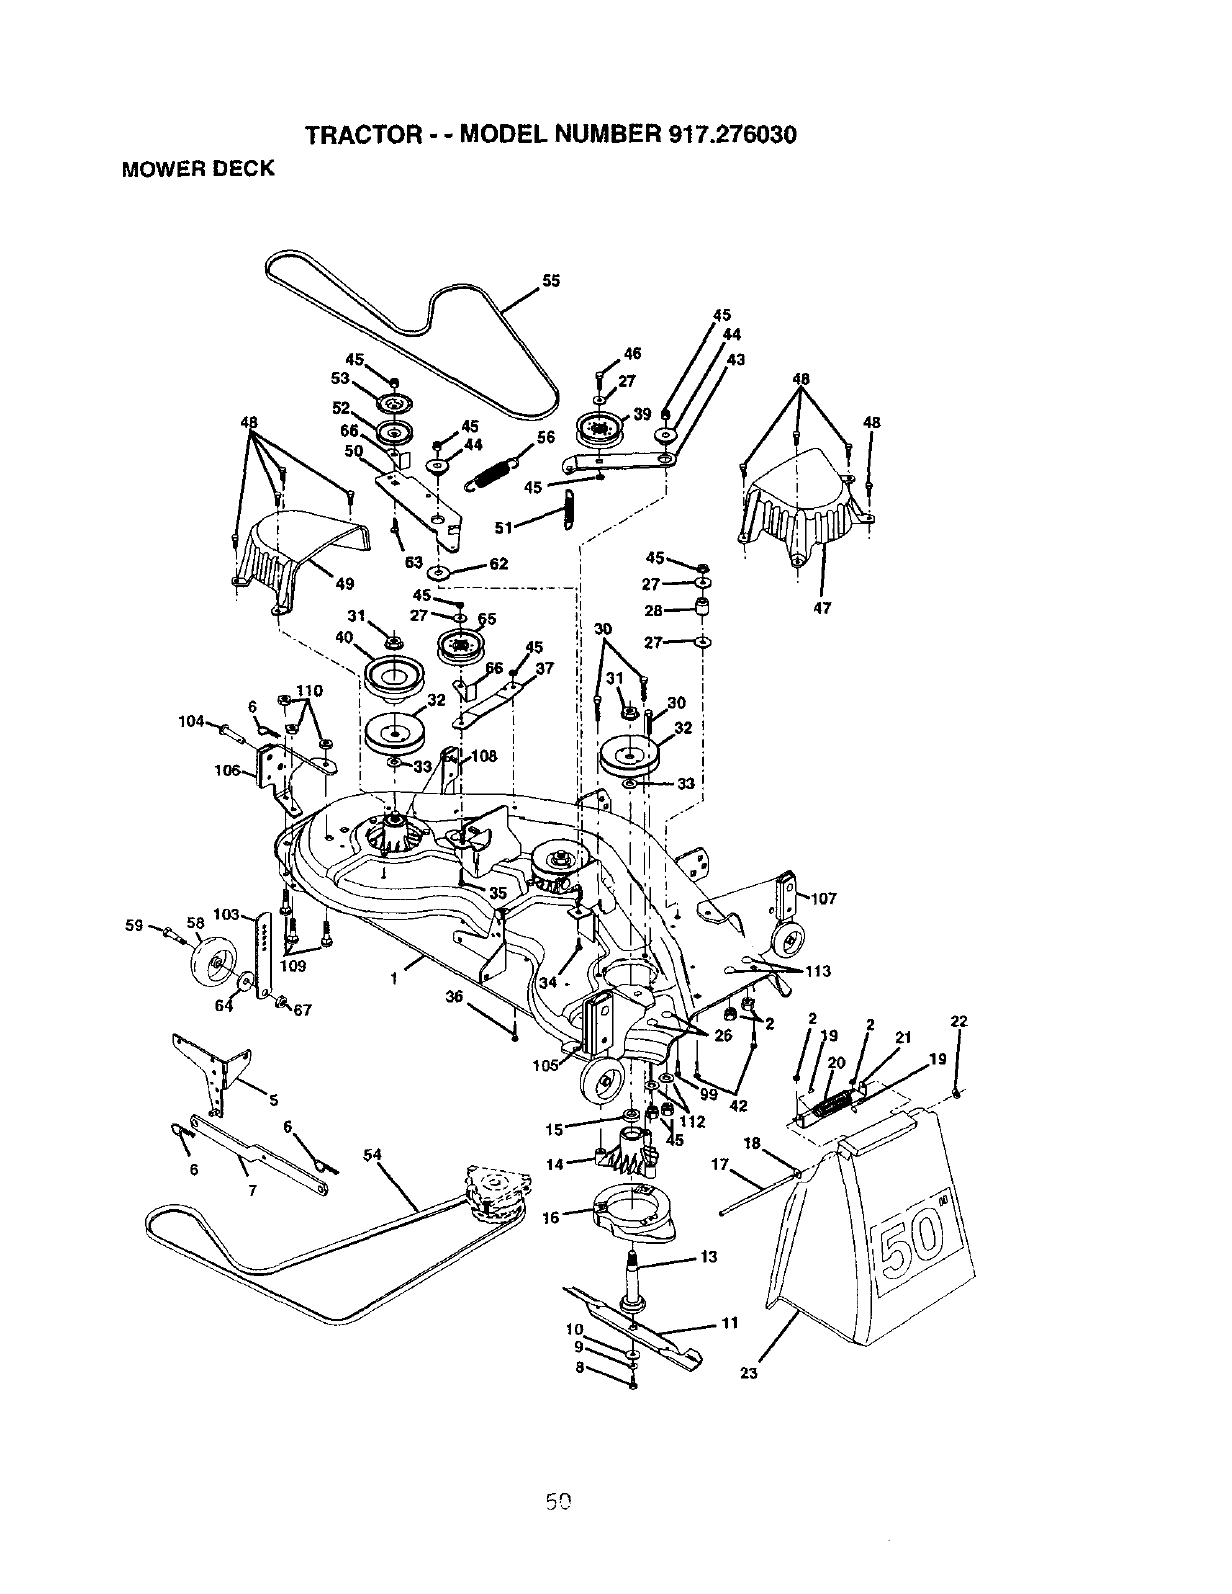 Page 50 of Craftsman Lawn Mower 917.27603 User Guide